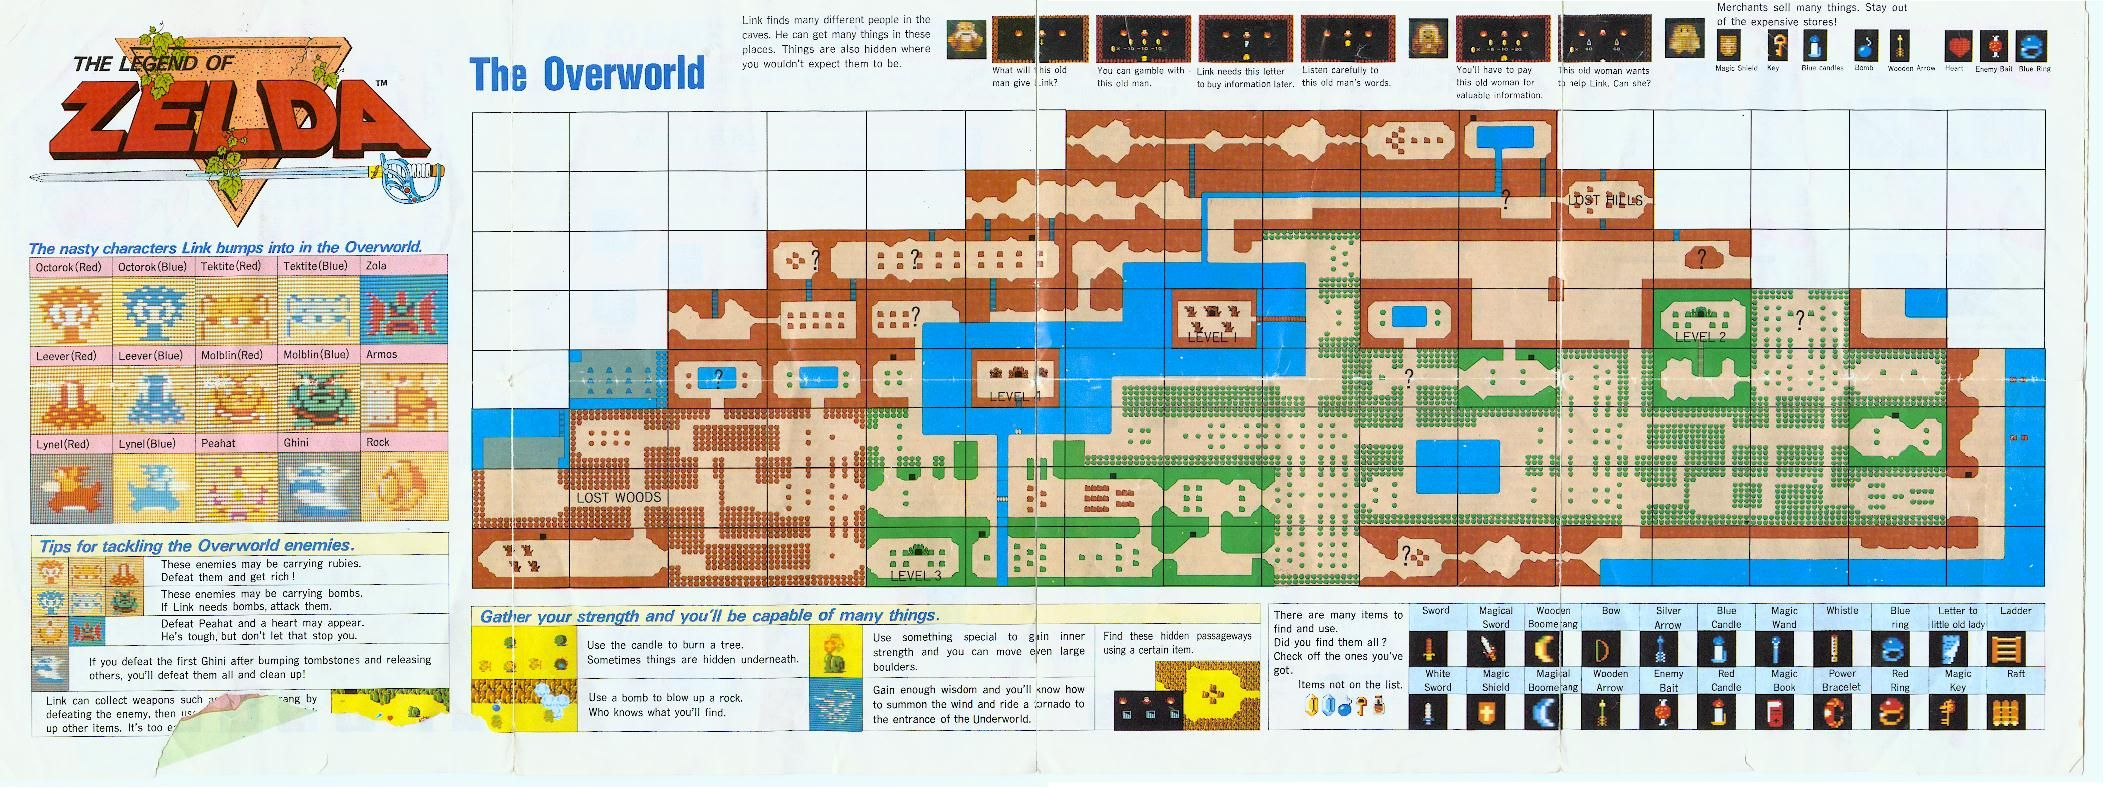 It's a Secret to Every | gaming room | Zelda map, Original ... Zelda Maps on ikana map, hyrule map, pokemon map, kingdom hearts map, ocarina of time map, castlevania 2 map, minecraft map, mario world map, wind waker map, castlevania 3 map, gta map, harvest moon map, zilla map, skyward sword map, smash brothers map, metroid map, star wars map, oracle of ages map, super mario map, mario kart map,